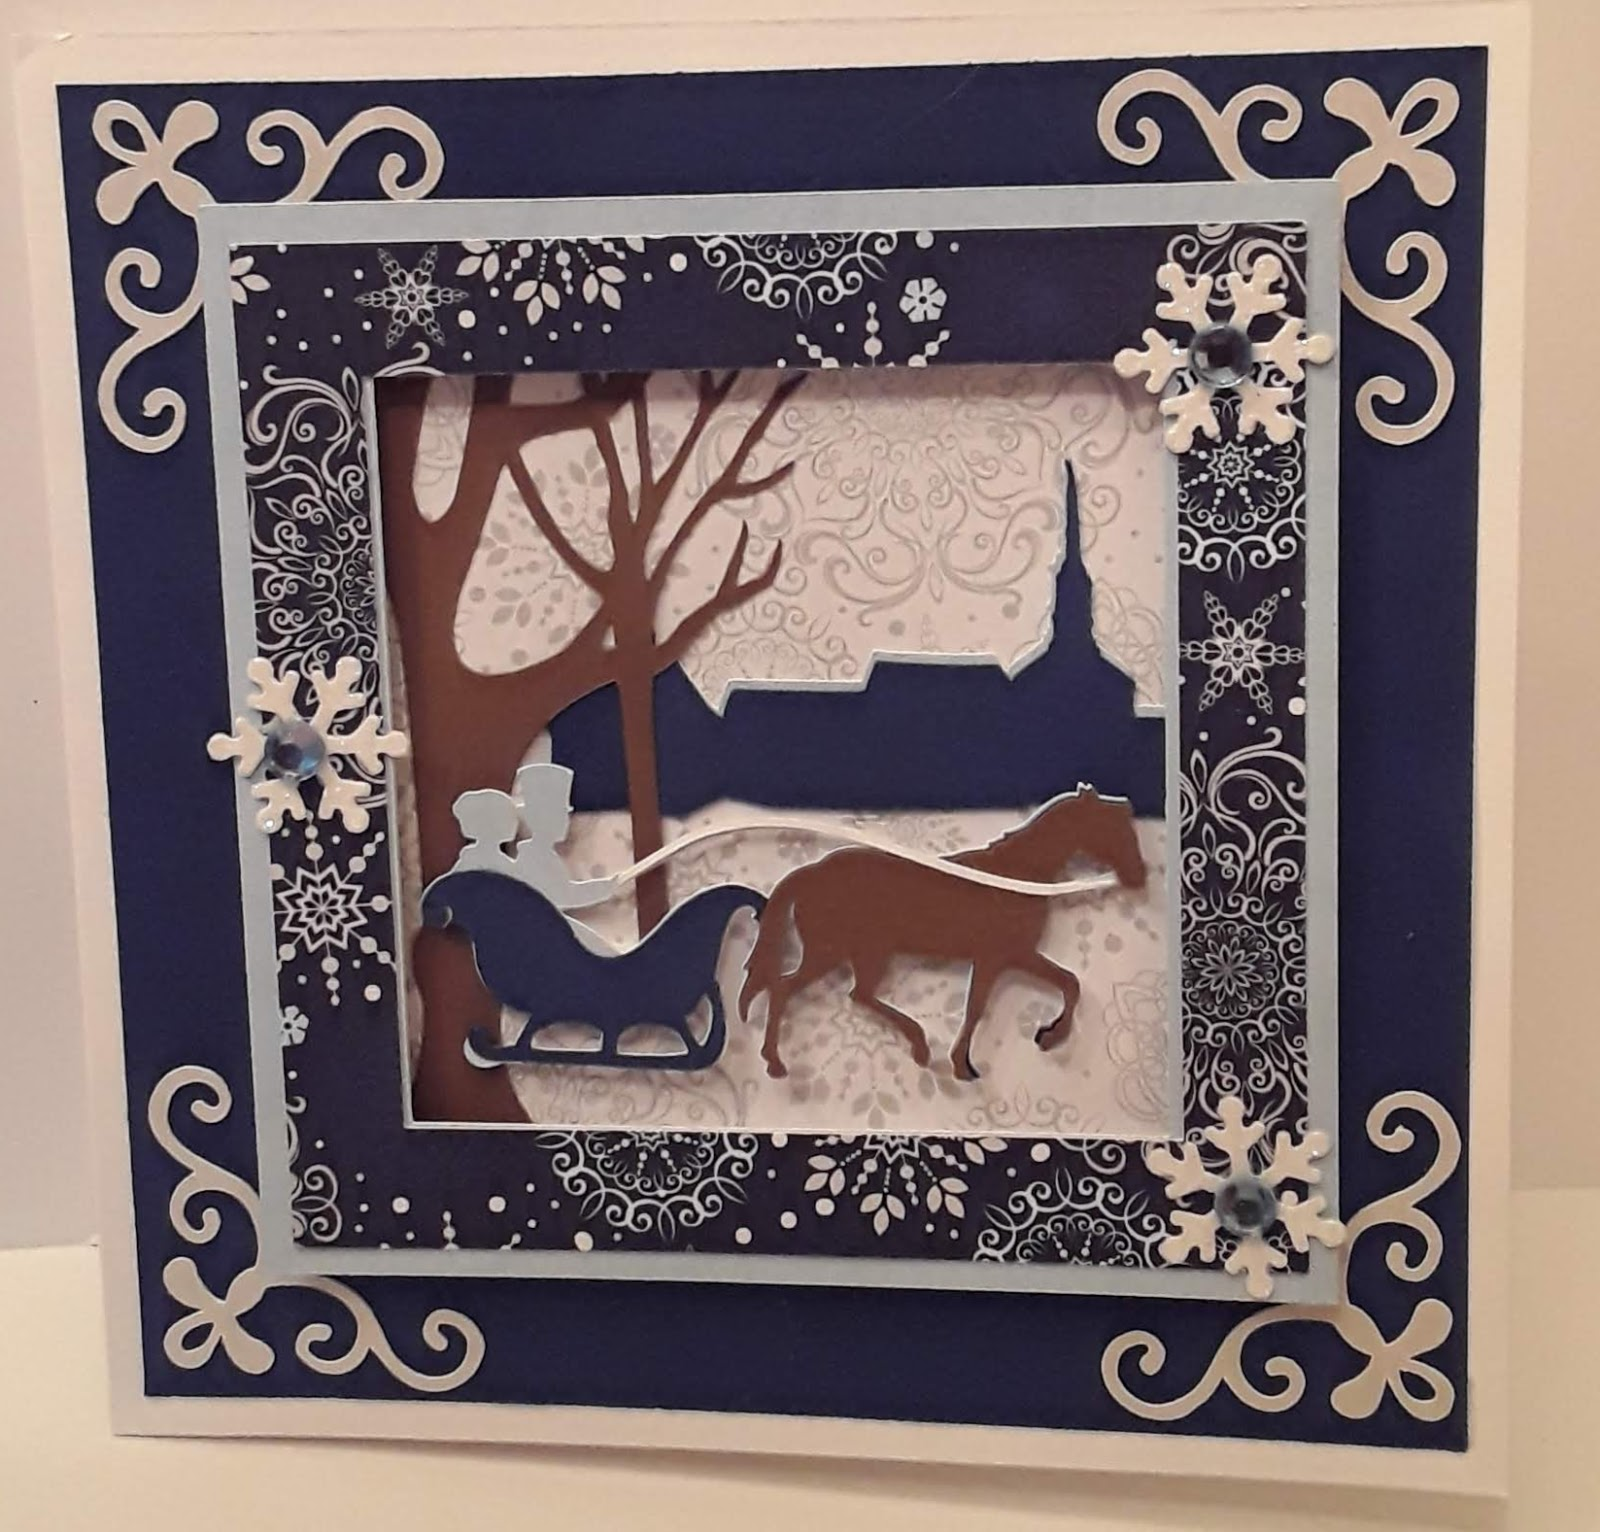 I Found This Card On Pinterest And Thought It Was Old Fashioned So Pretty Is From The Christmas Cards Cartridge Bet Your Projects Are